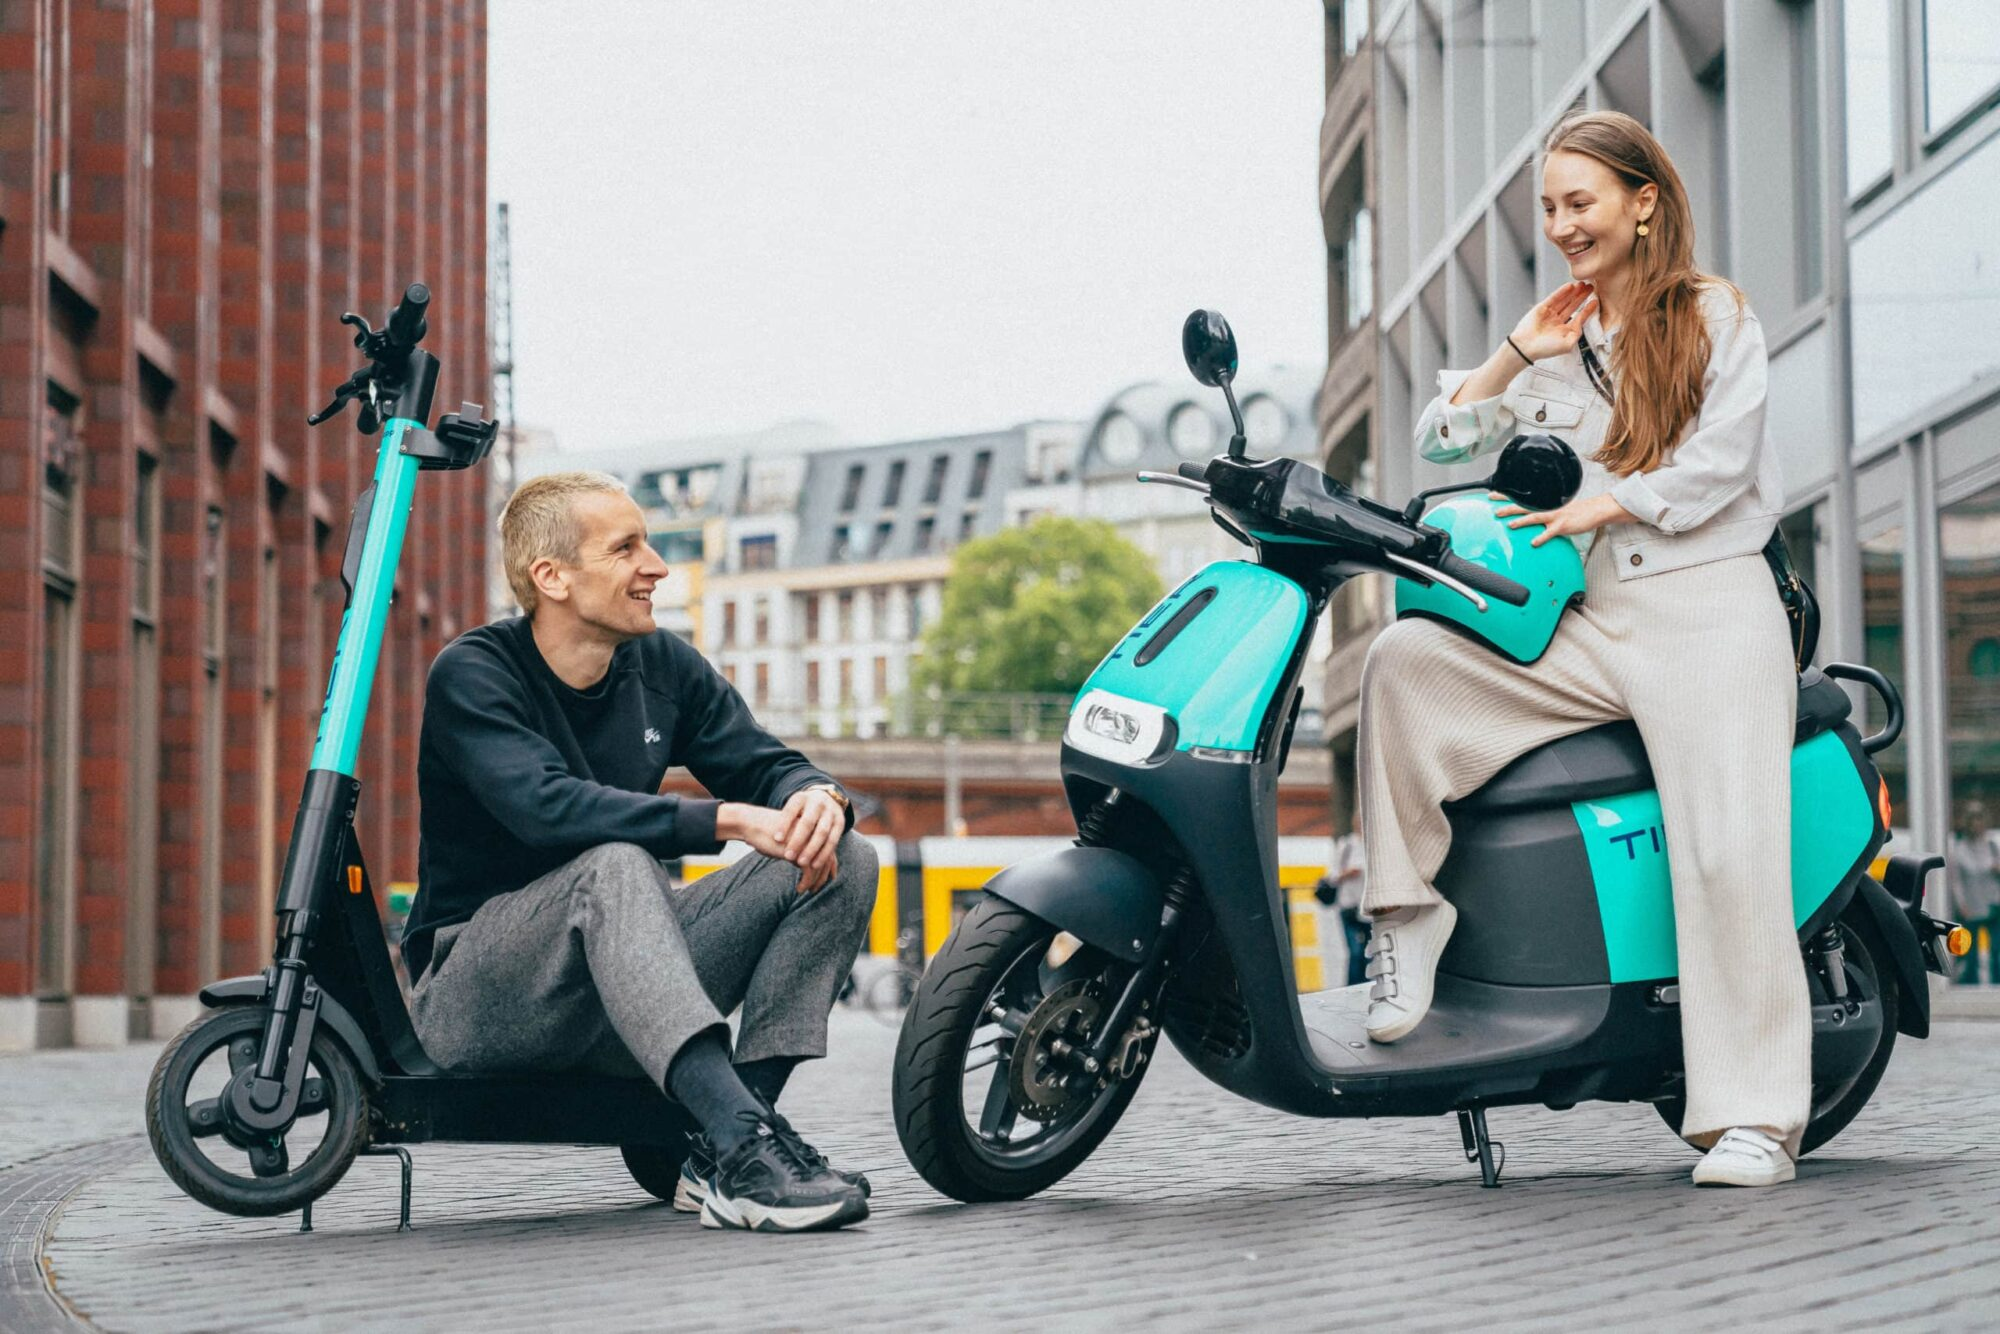 SoftBank leads $250m investment in e-scooter startup Tier